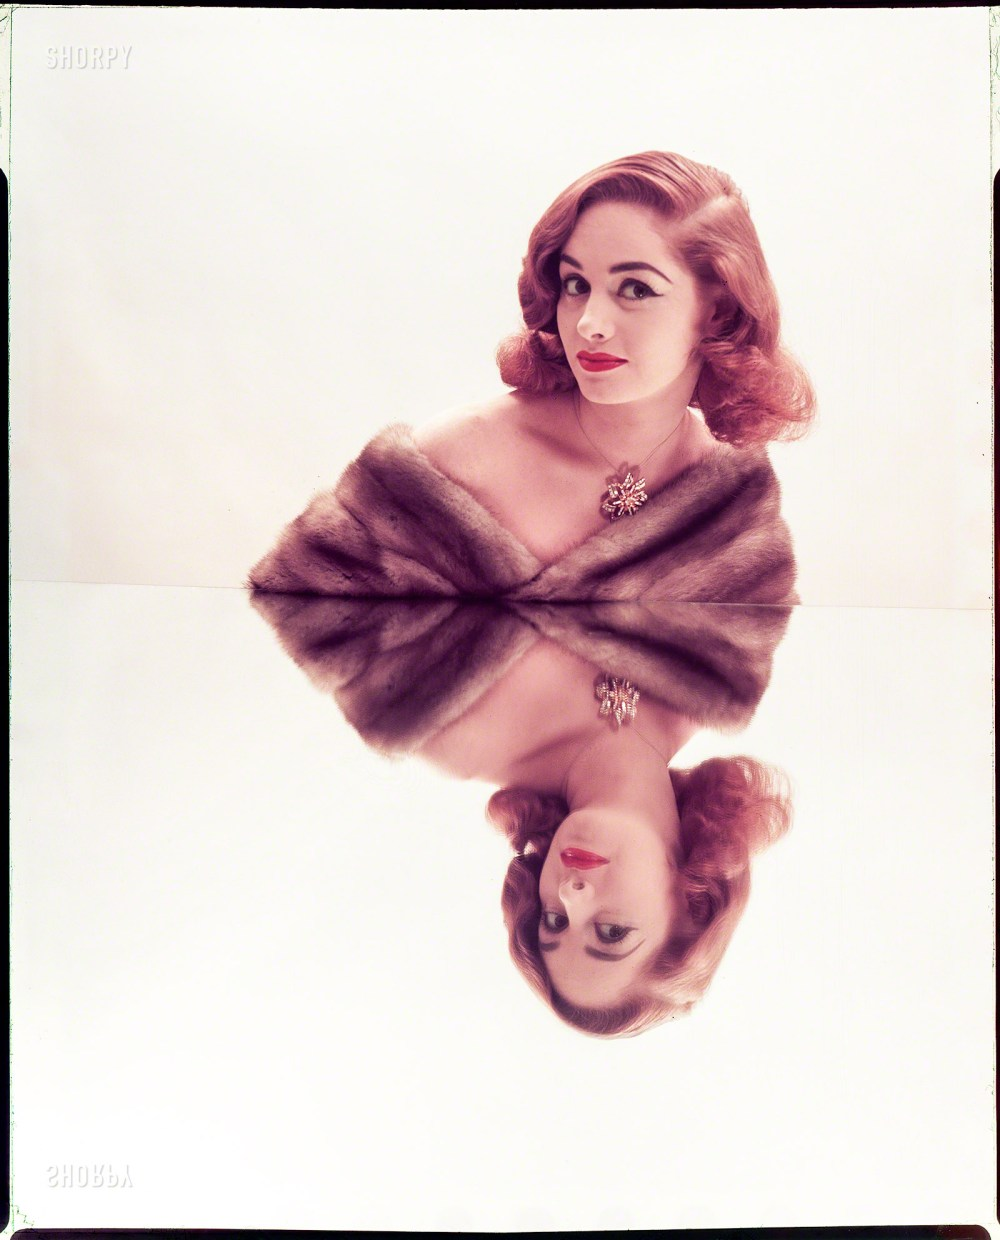 "July 1952. ""Photographs show models posed leaning shoulders against mirrors, resulting in reflected images. Includes women wearing furs and jewels; various hairstyles."" Color transparency by Louis Faurer for the Look magazine assignment ""Reflected Beauty: Hair Now Gets Double Exposure."" From Shorpy Historical Photos; see link below."